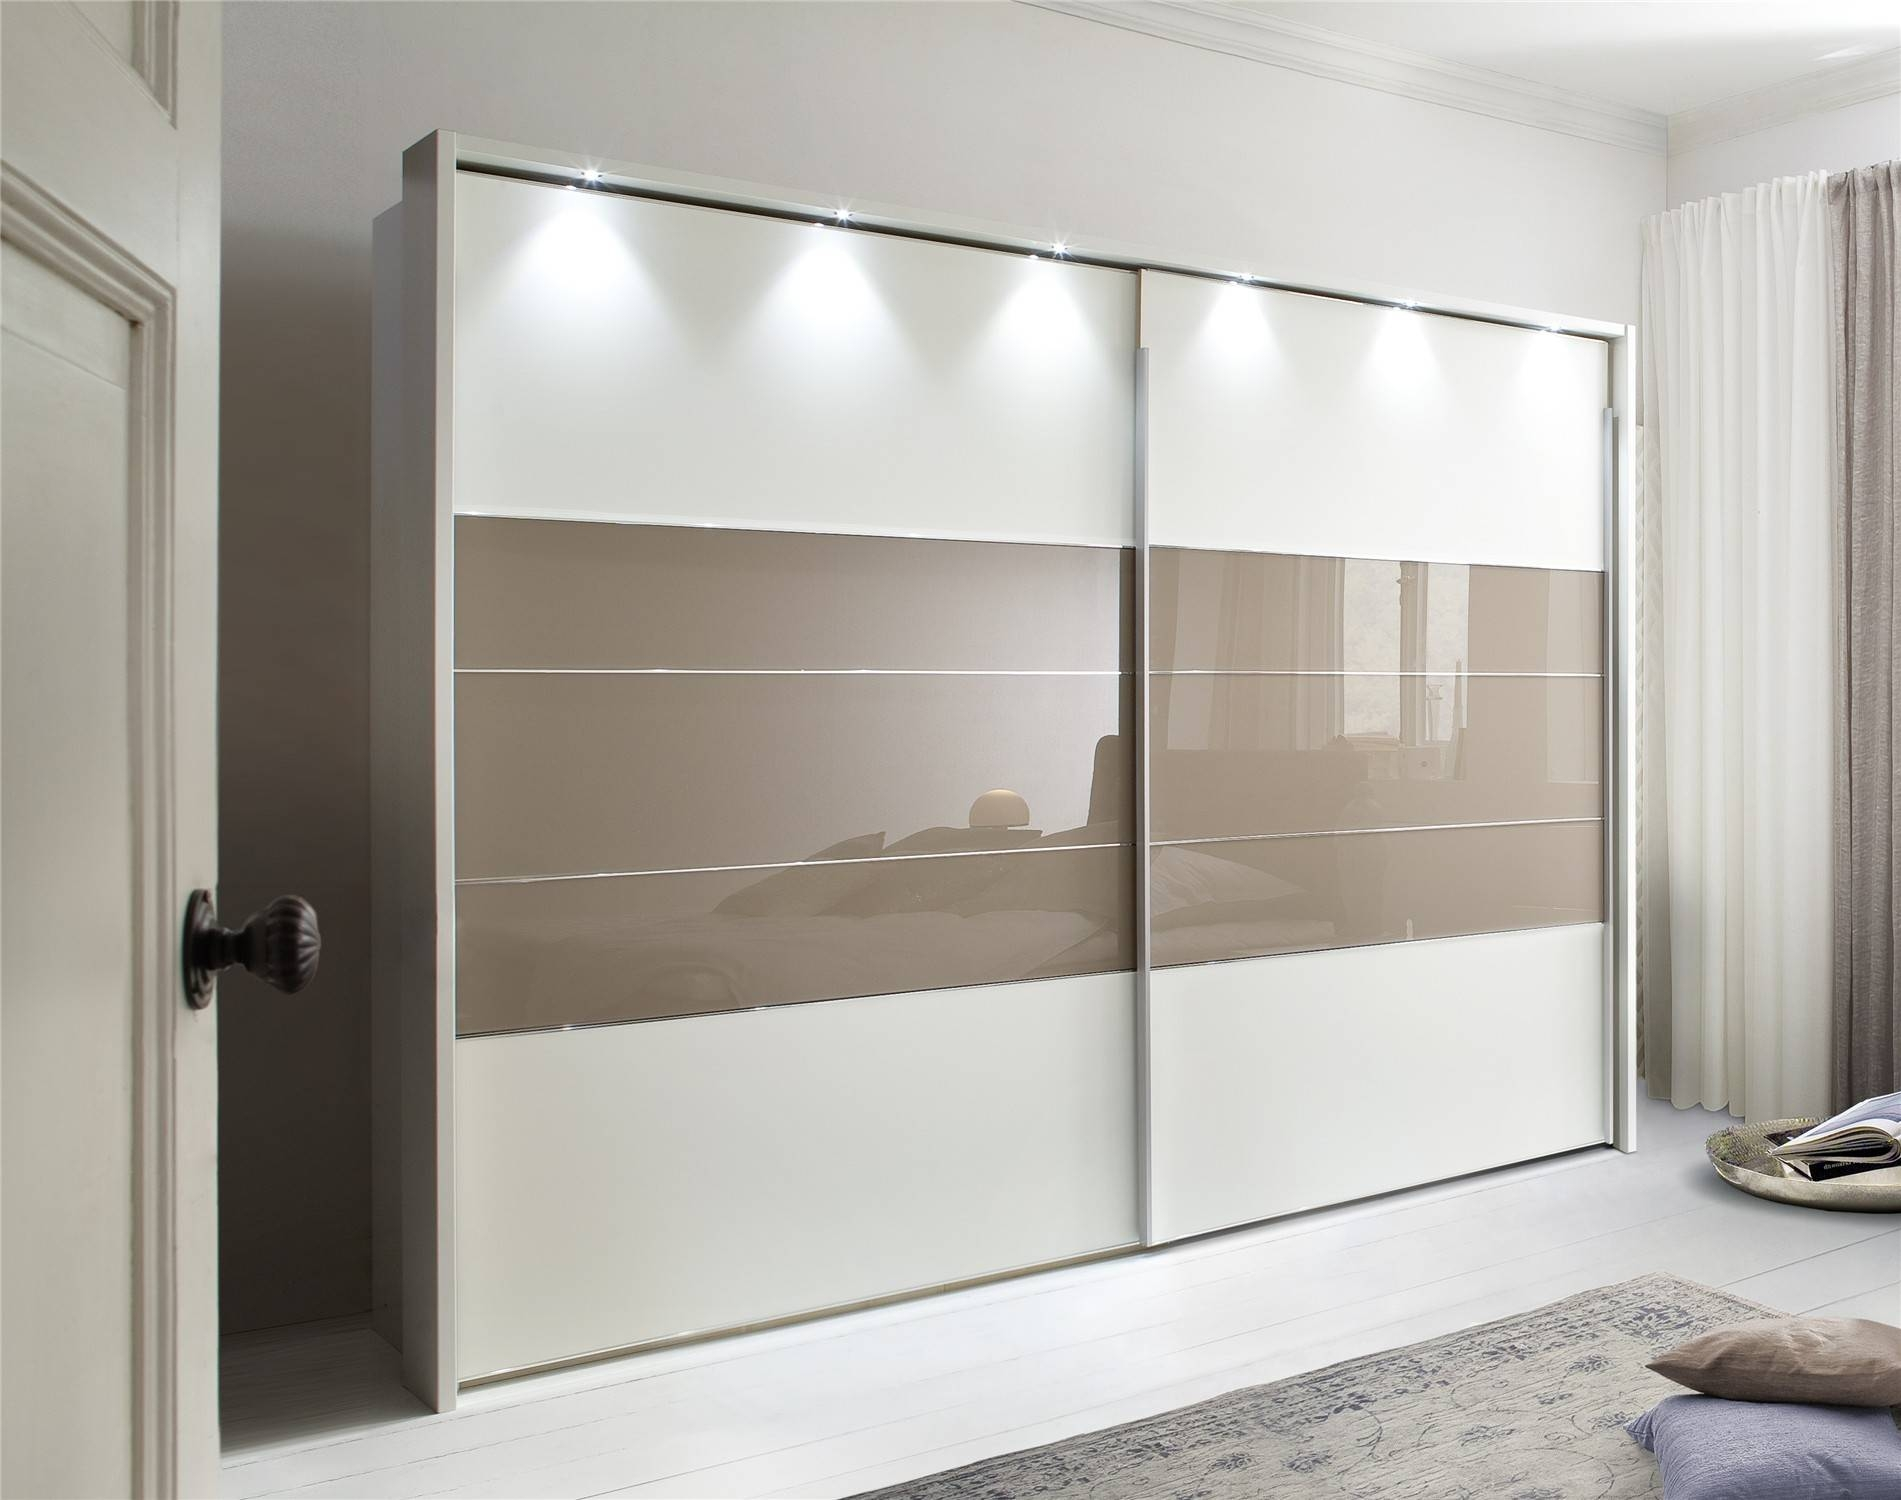 Cheap Wardrobes With Sliding Doors | Hallway Furniture Ideas With Cheap Double Wardrobes (View 5 of 15)